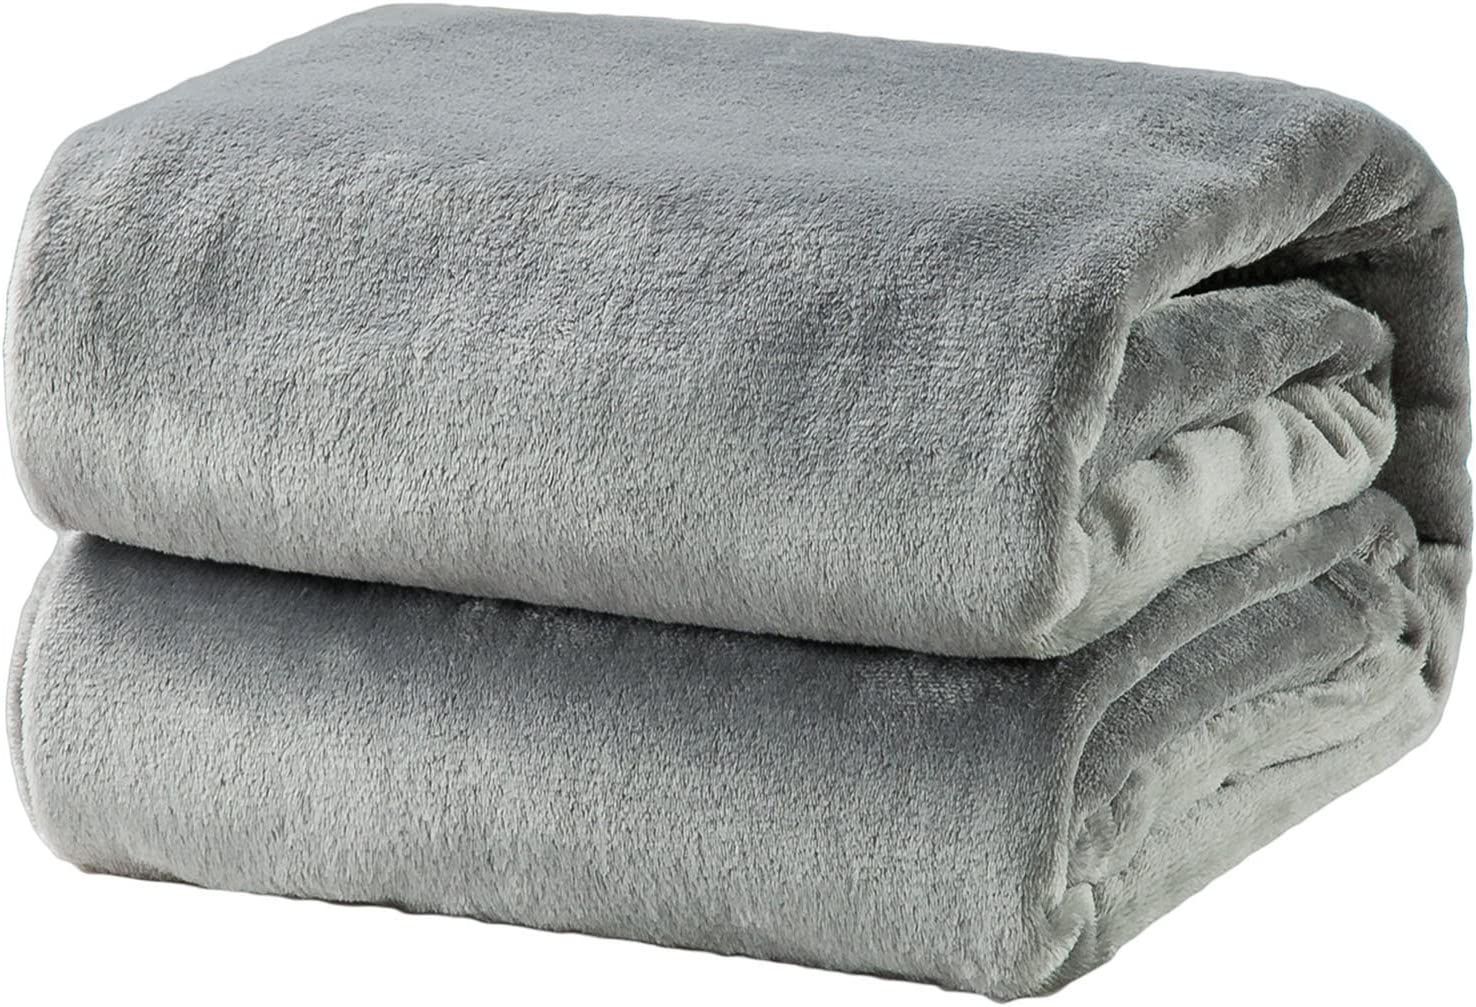 Bedsure Fleece Blanket Throw Size Grey Lightweight Super Soft Cozy Luxury Bed Blanket Microfiber